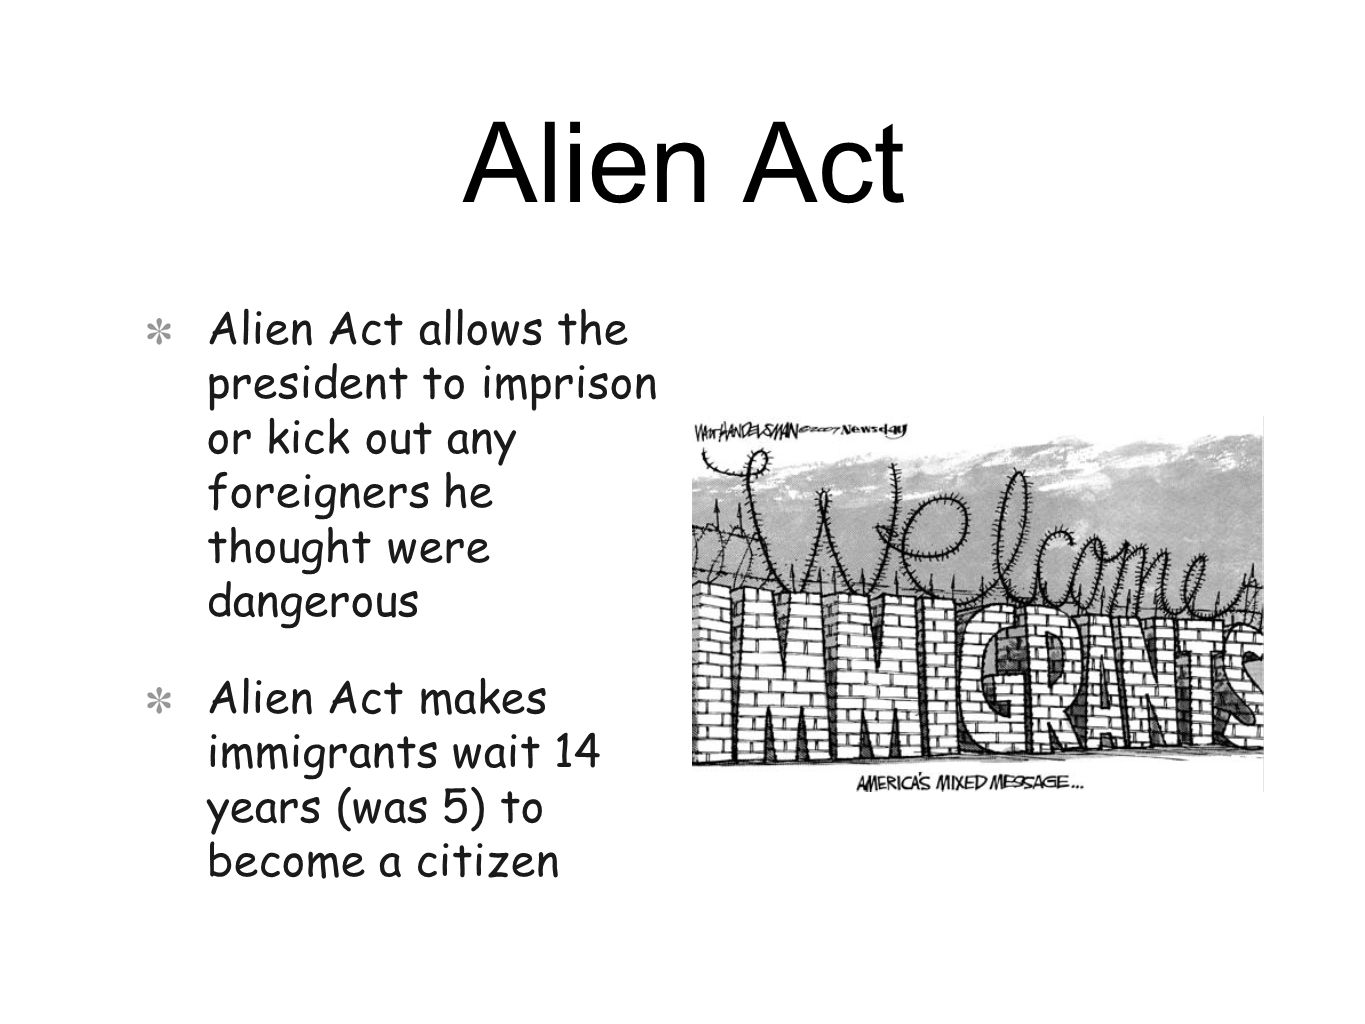 Alien Act Alien Act allows the president to imprison or kick out any foreigners he thought were dangerous Alien Act makes immigrants wait 14 years (was 5) to become a citizen